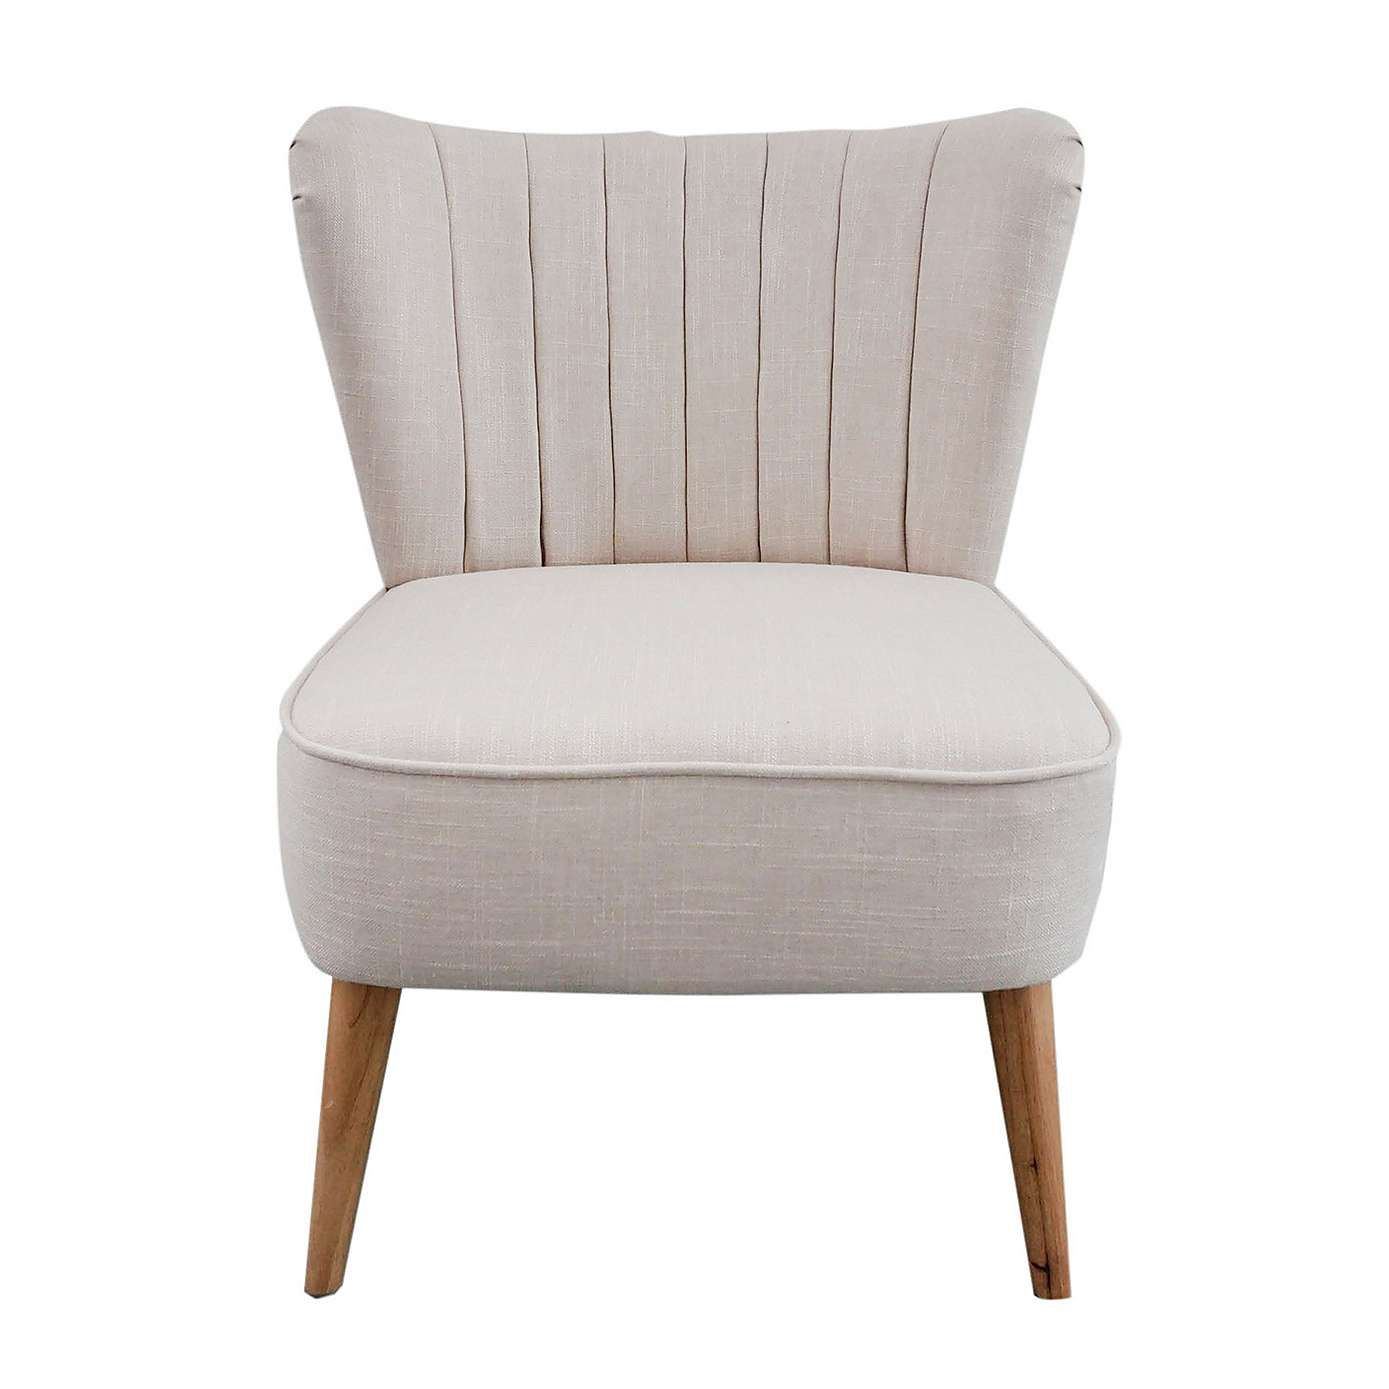 Occasional Chairs, Chair, Soft